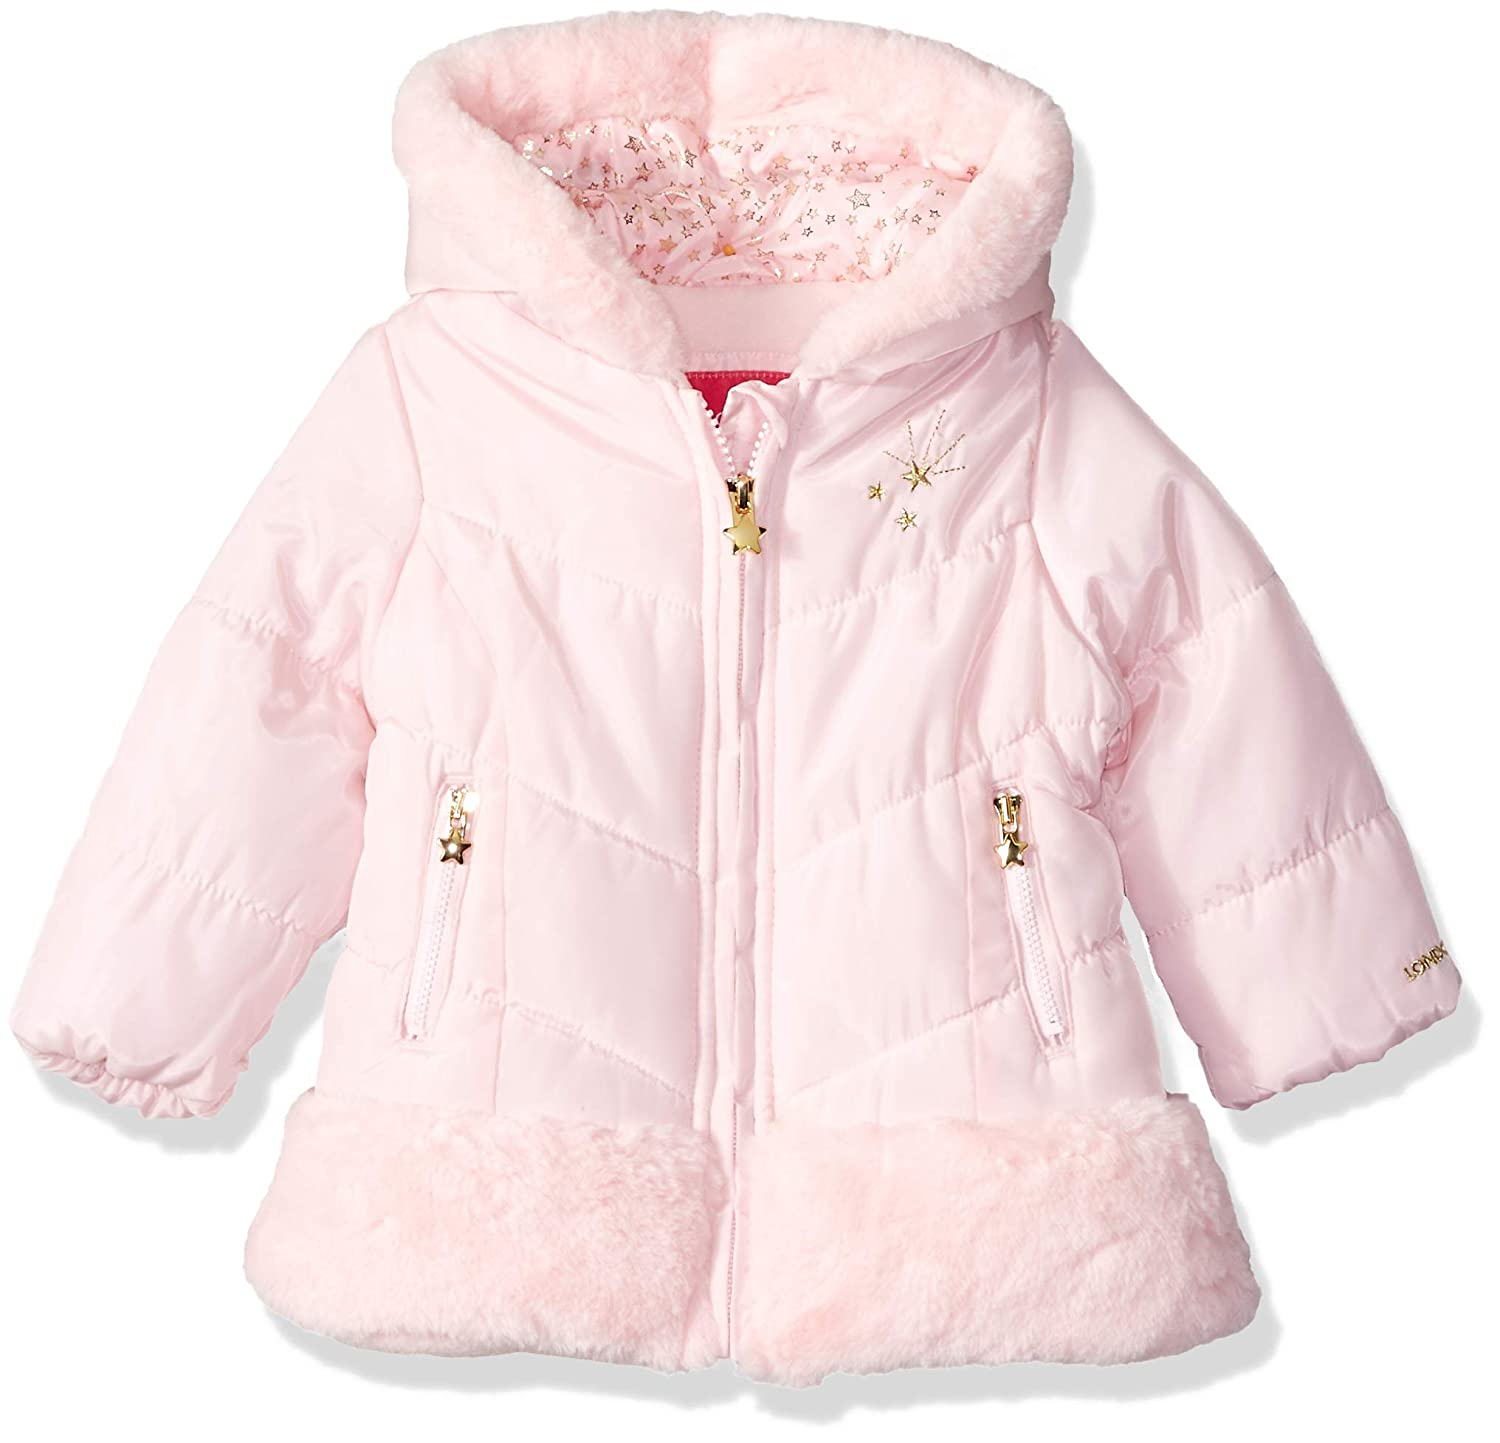 London Fog Baby Girls Shine Warm Winter Jacket, L218567